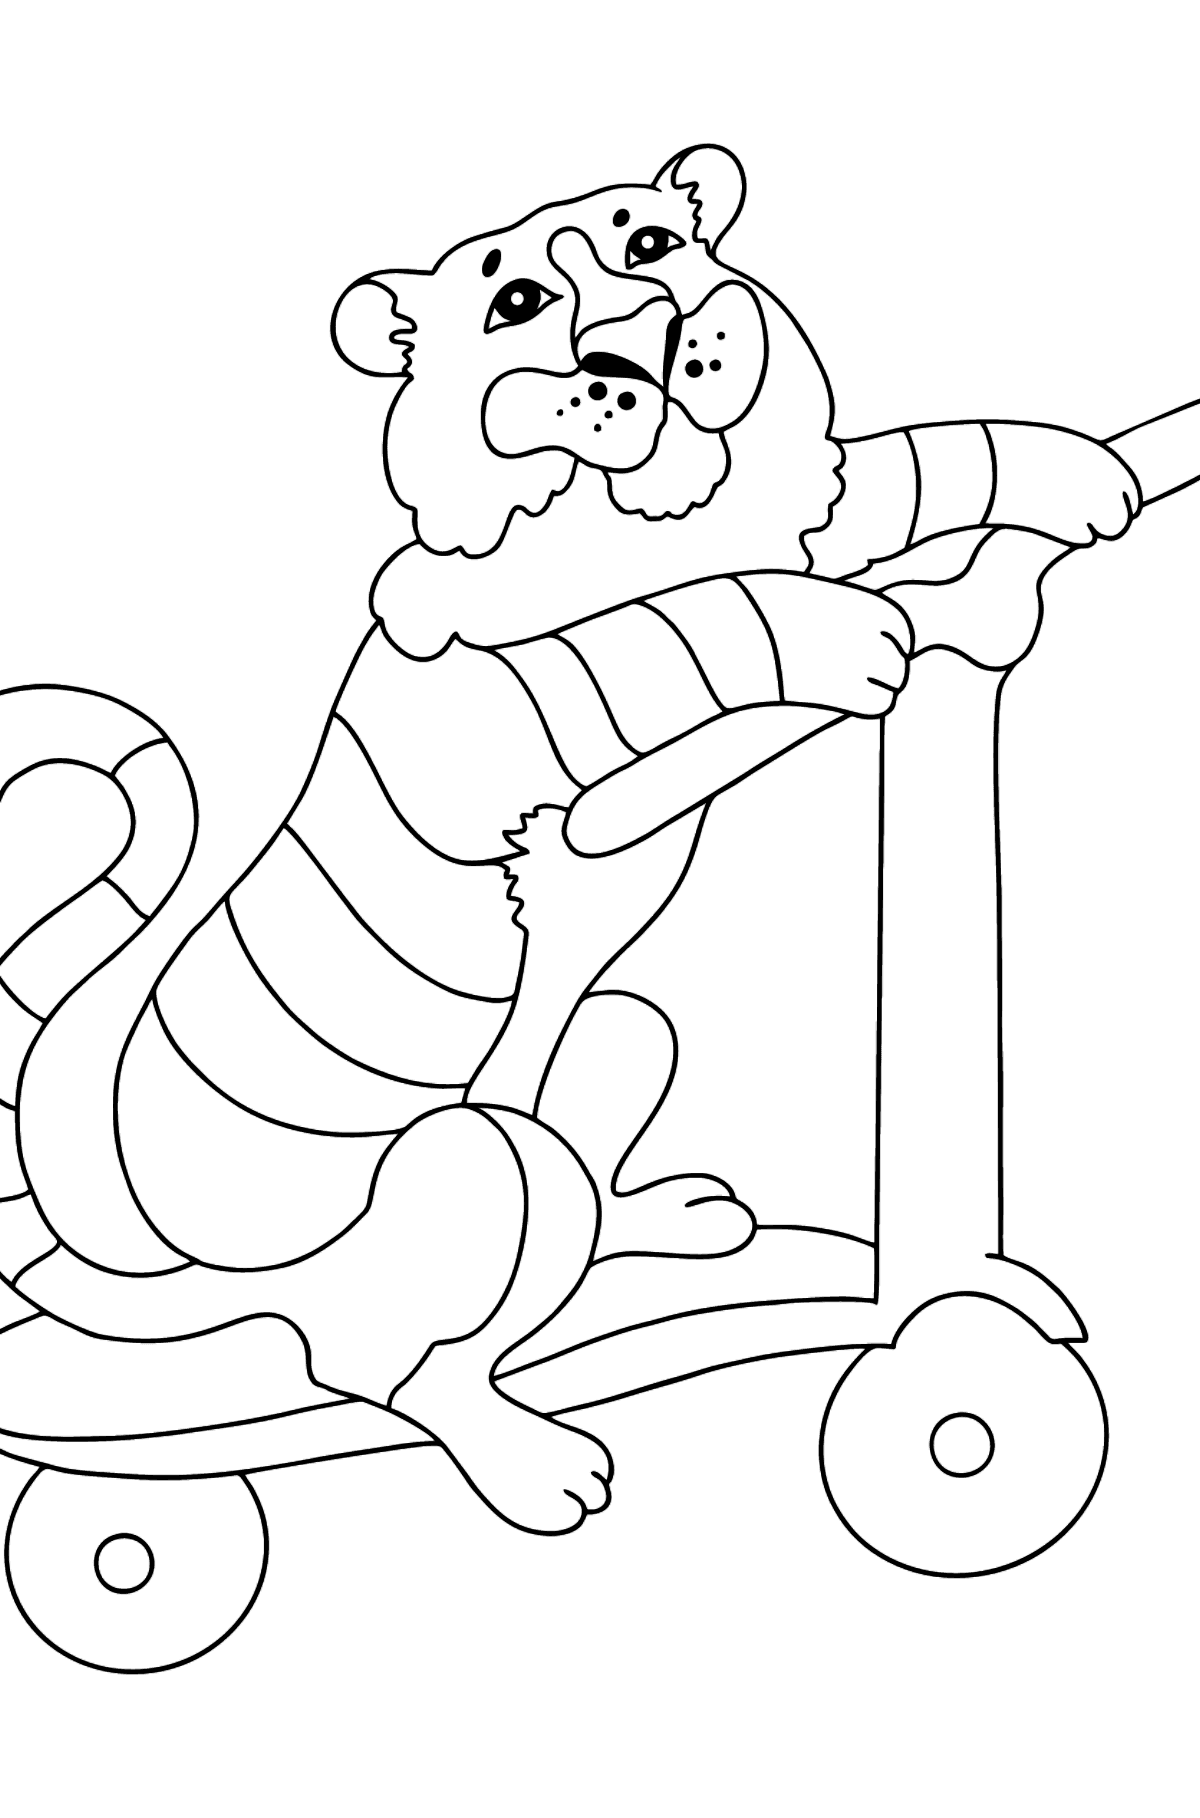 Coloring Page - A Tiger on a Fancy Scooter - Coloring Pages for Kids